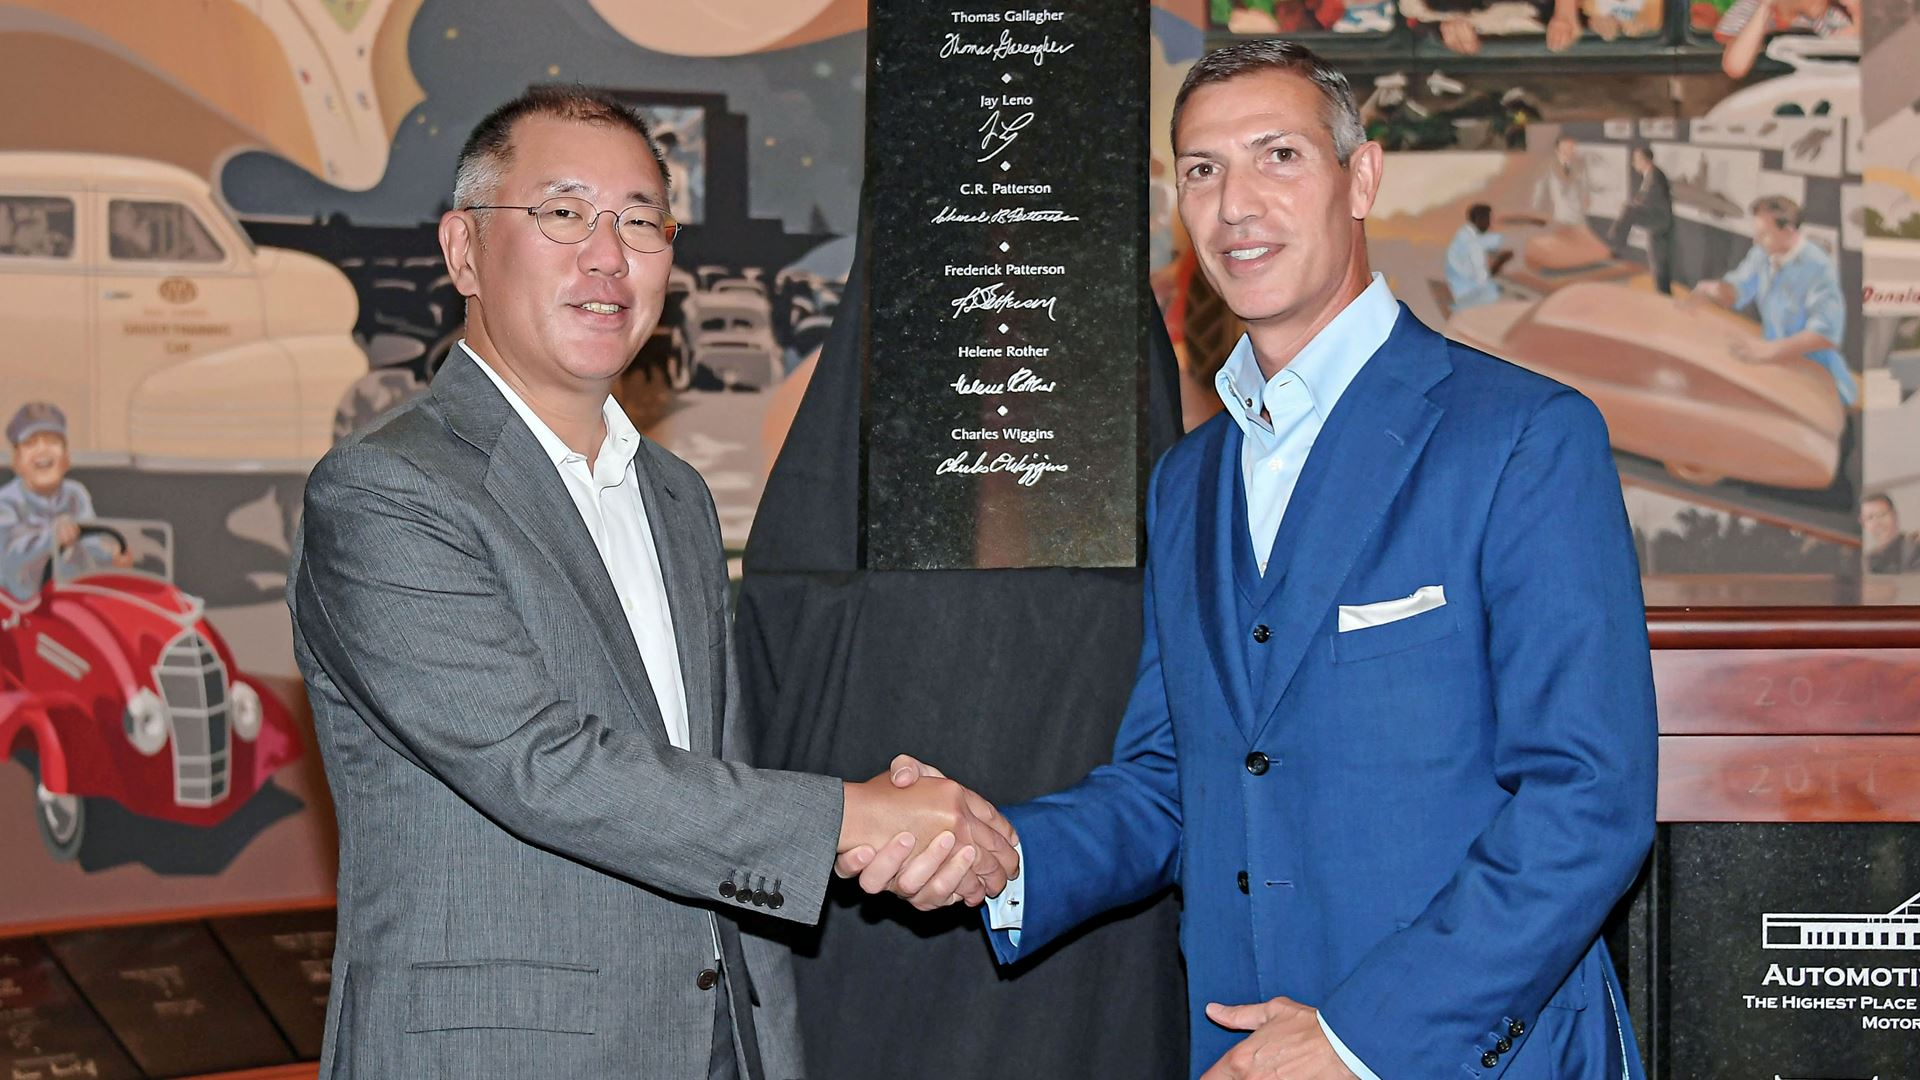 Hyundai Motor Group Honorary Chairman Mong-Koo Chung Inducted Into Automotive Hall of Fame at Official Ceremony - Image 5